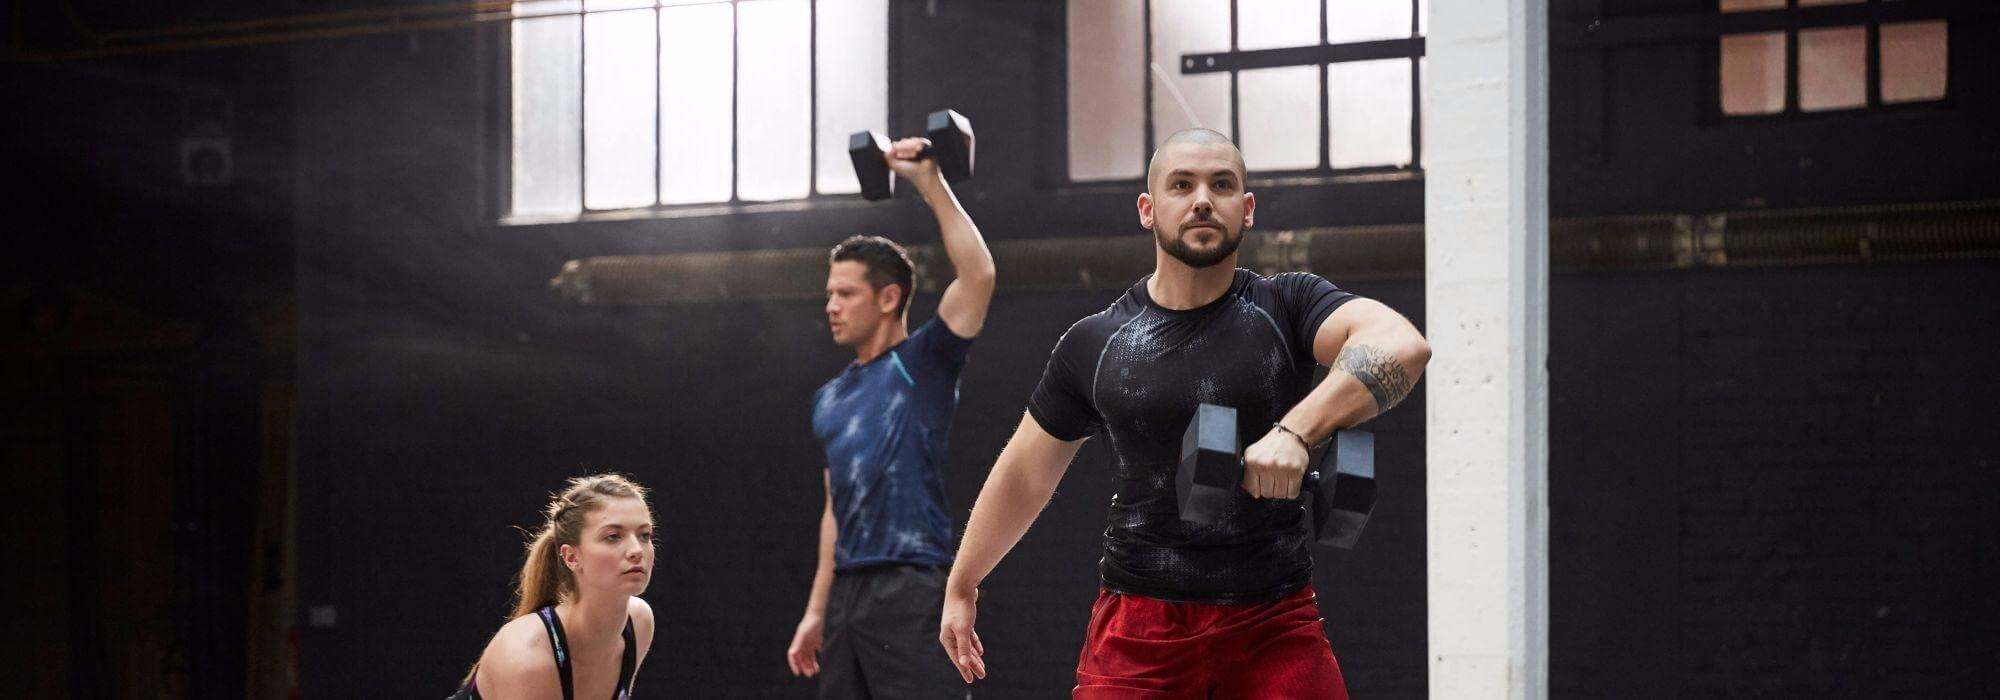 4 Reasons Why Strength Training is Important for Weight Loss